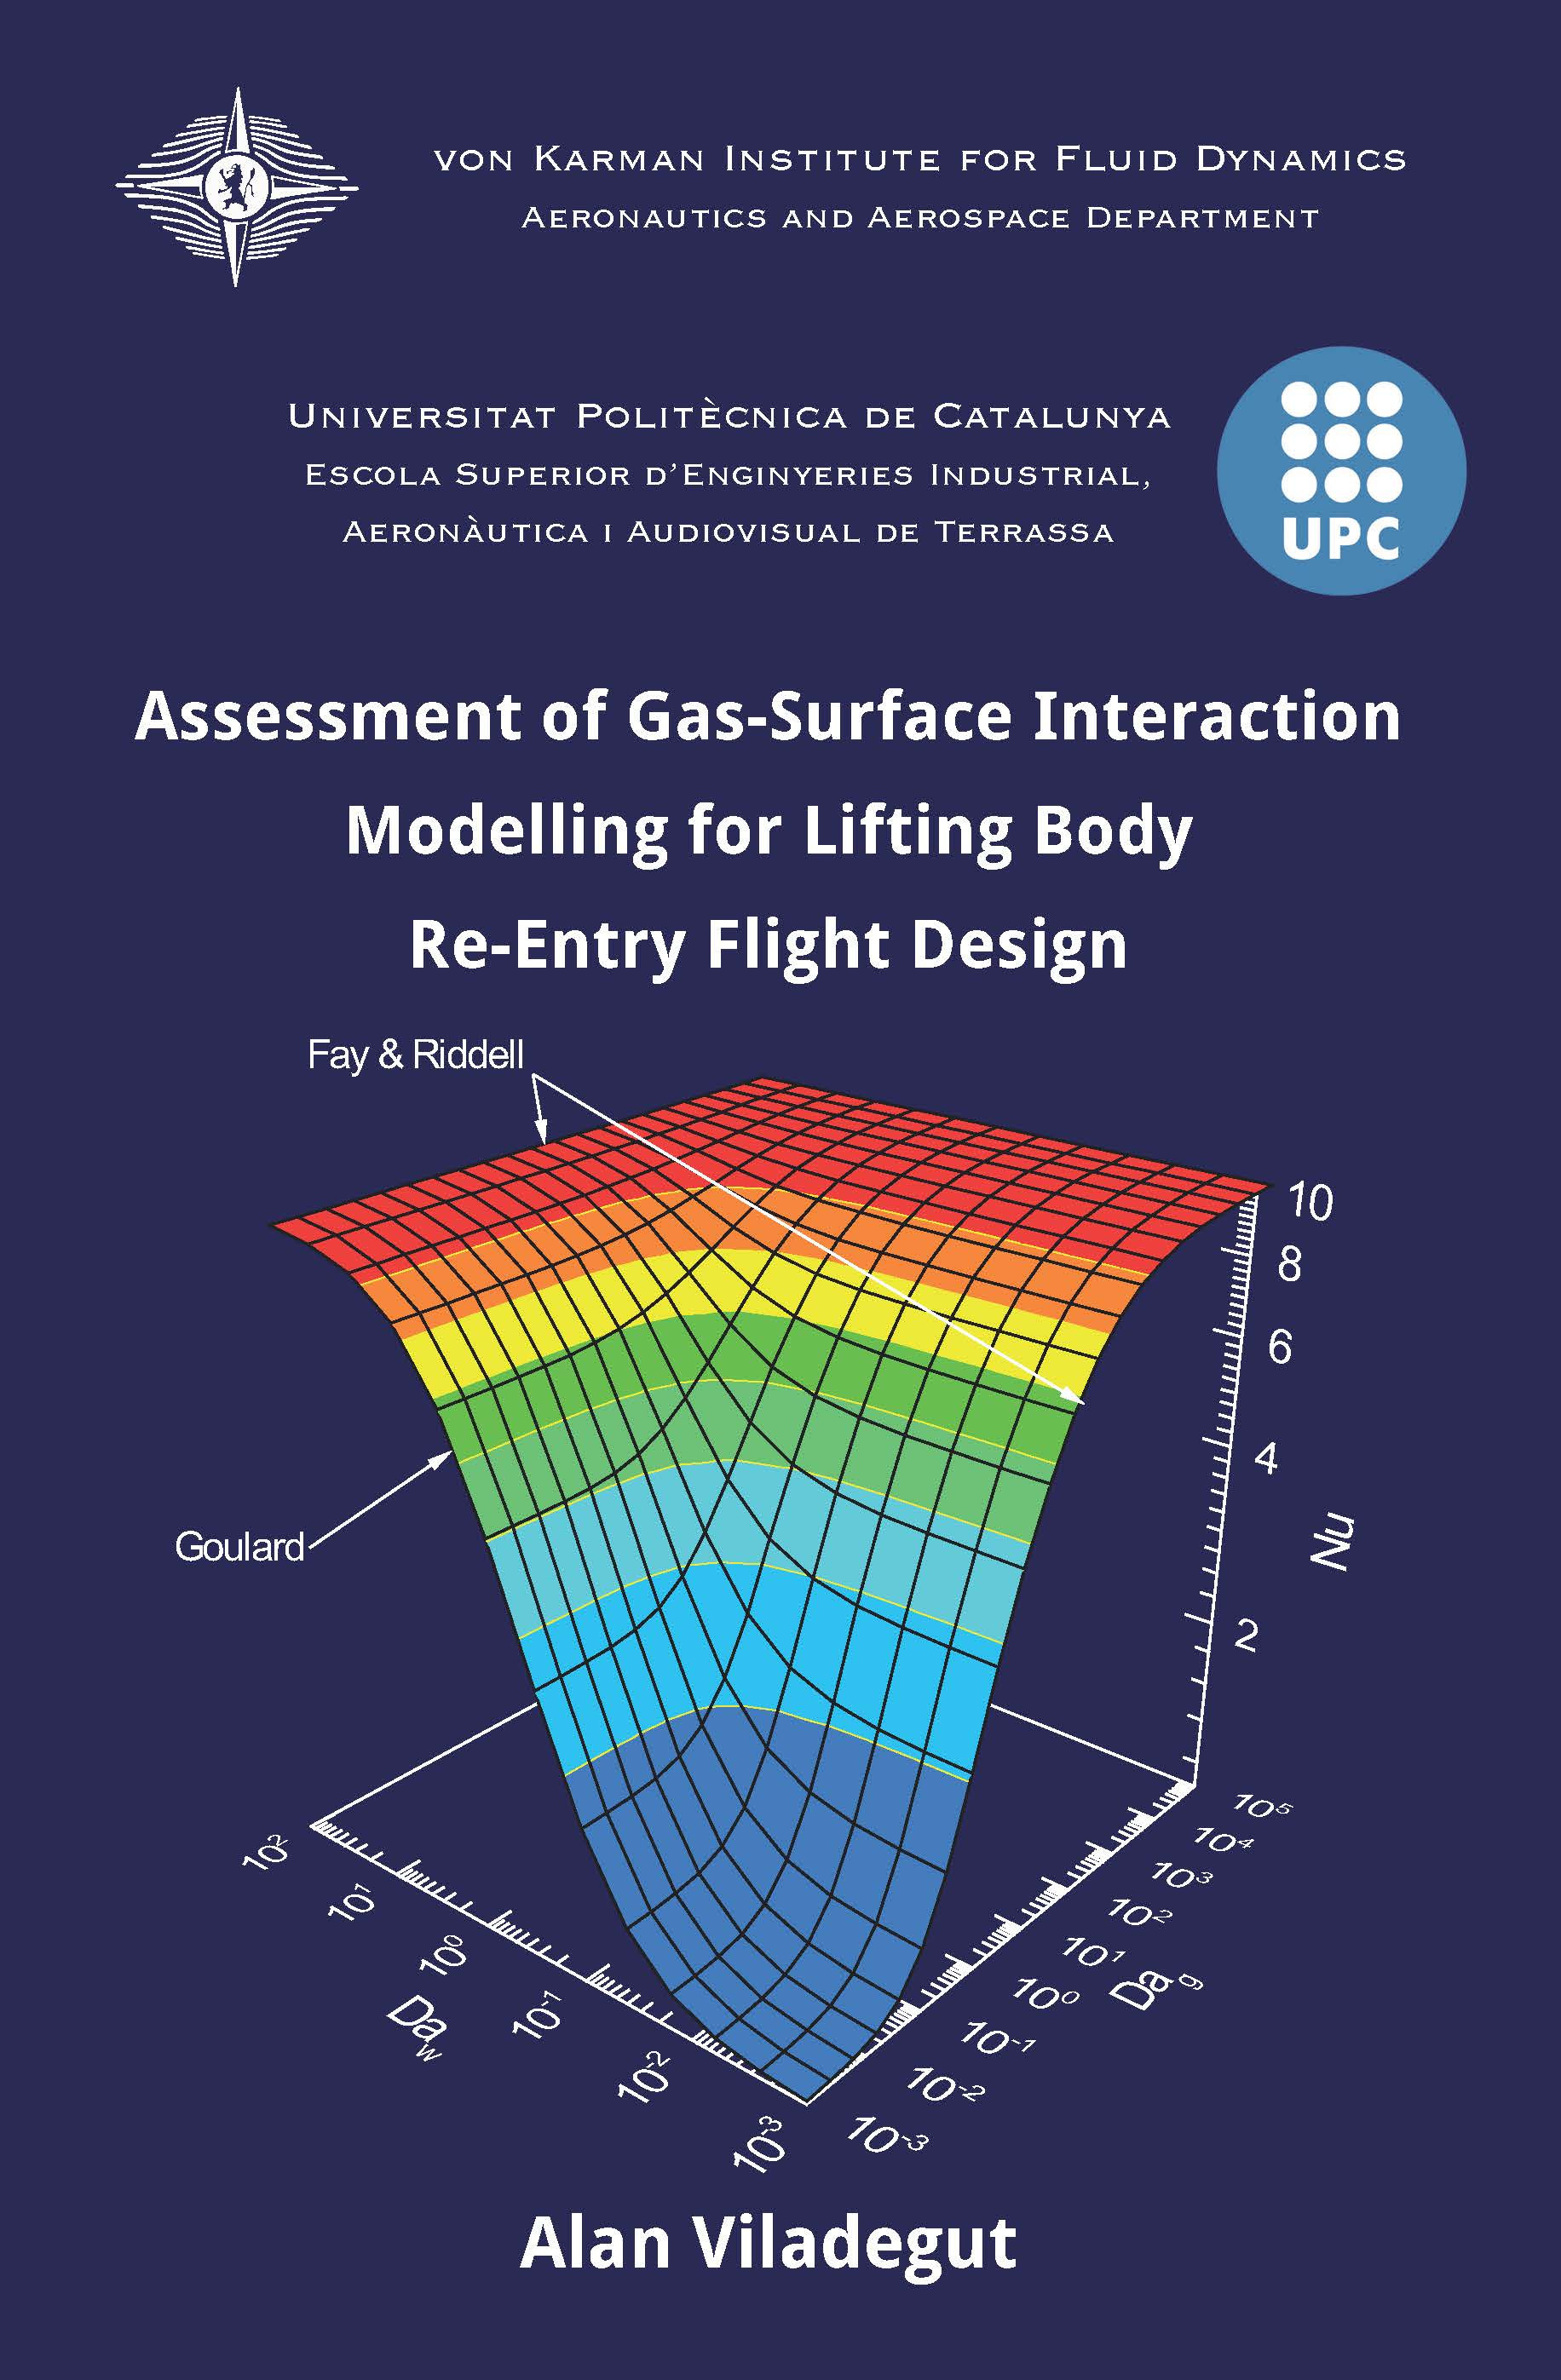 Assessment of gas-surface interaction modelling for lifting body re-entry flight design  - Alan Viladegut - Ph.D. Thesis - Free download